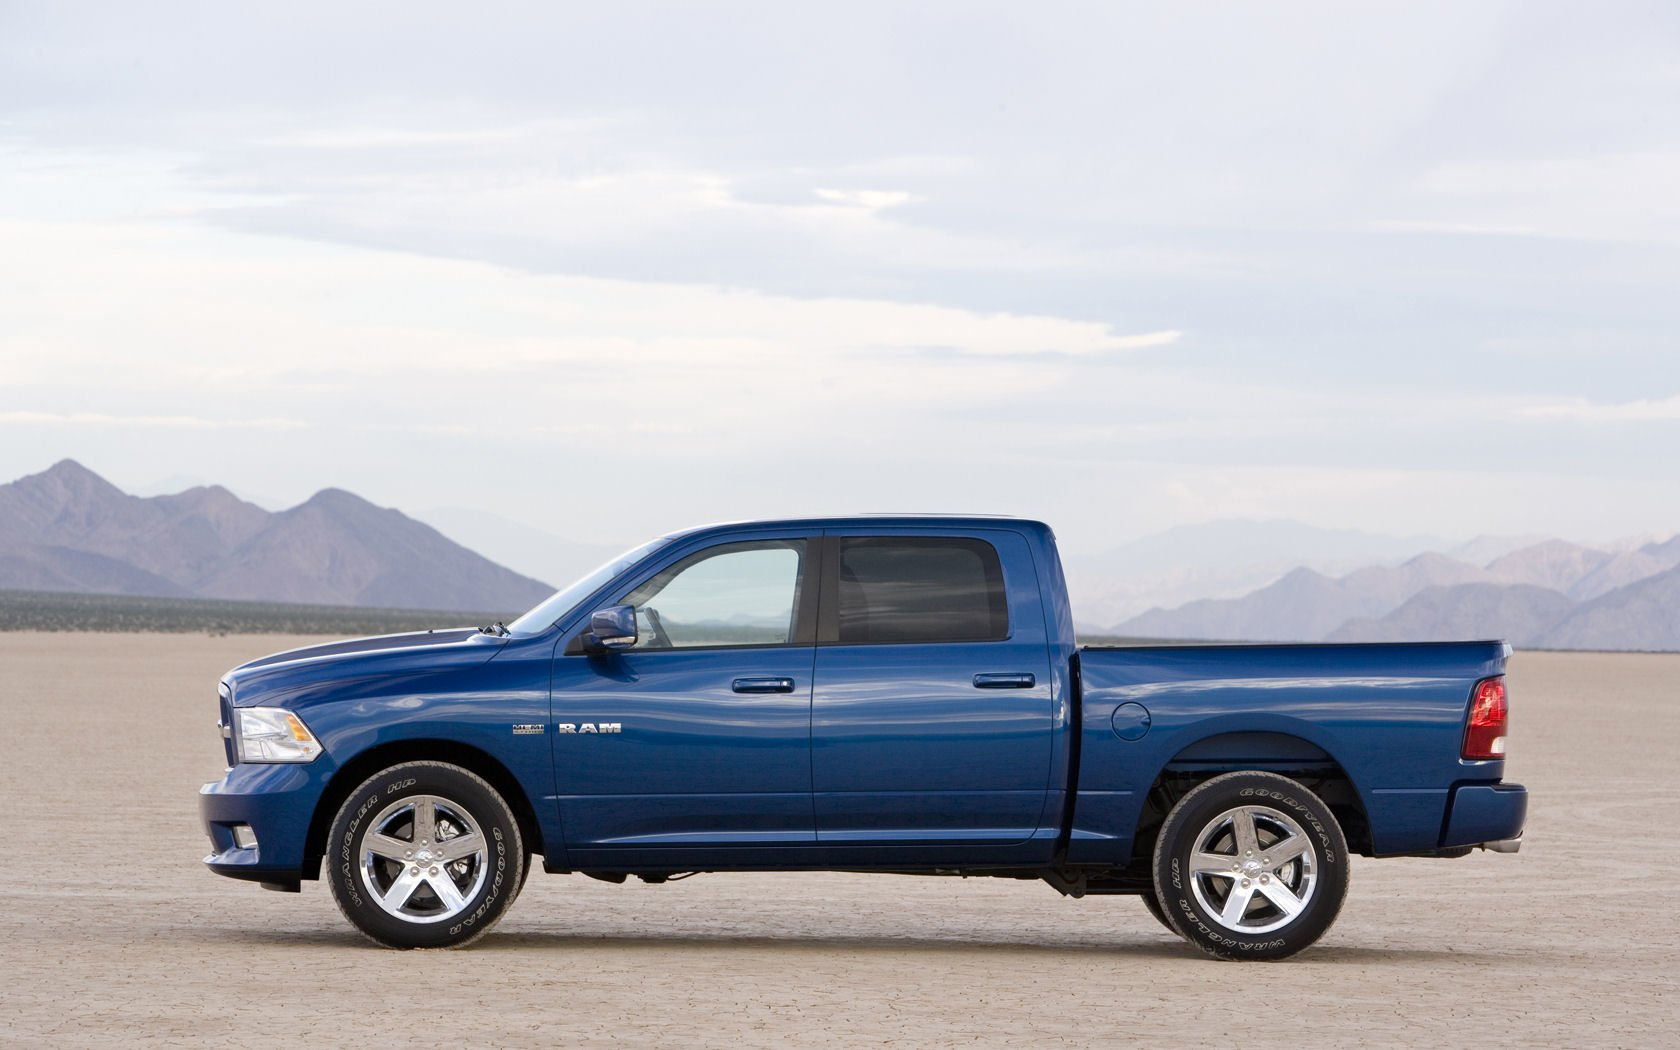 Dodge Ram 1500 Wallpaper And Background Image 1680x1050 Id 892402 Wallpaper Abyss